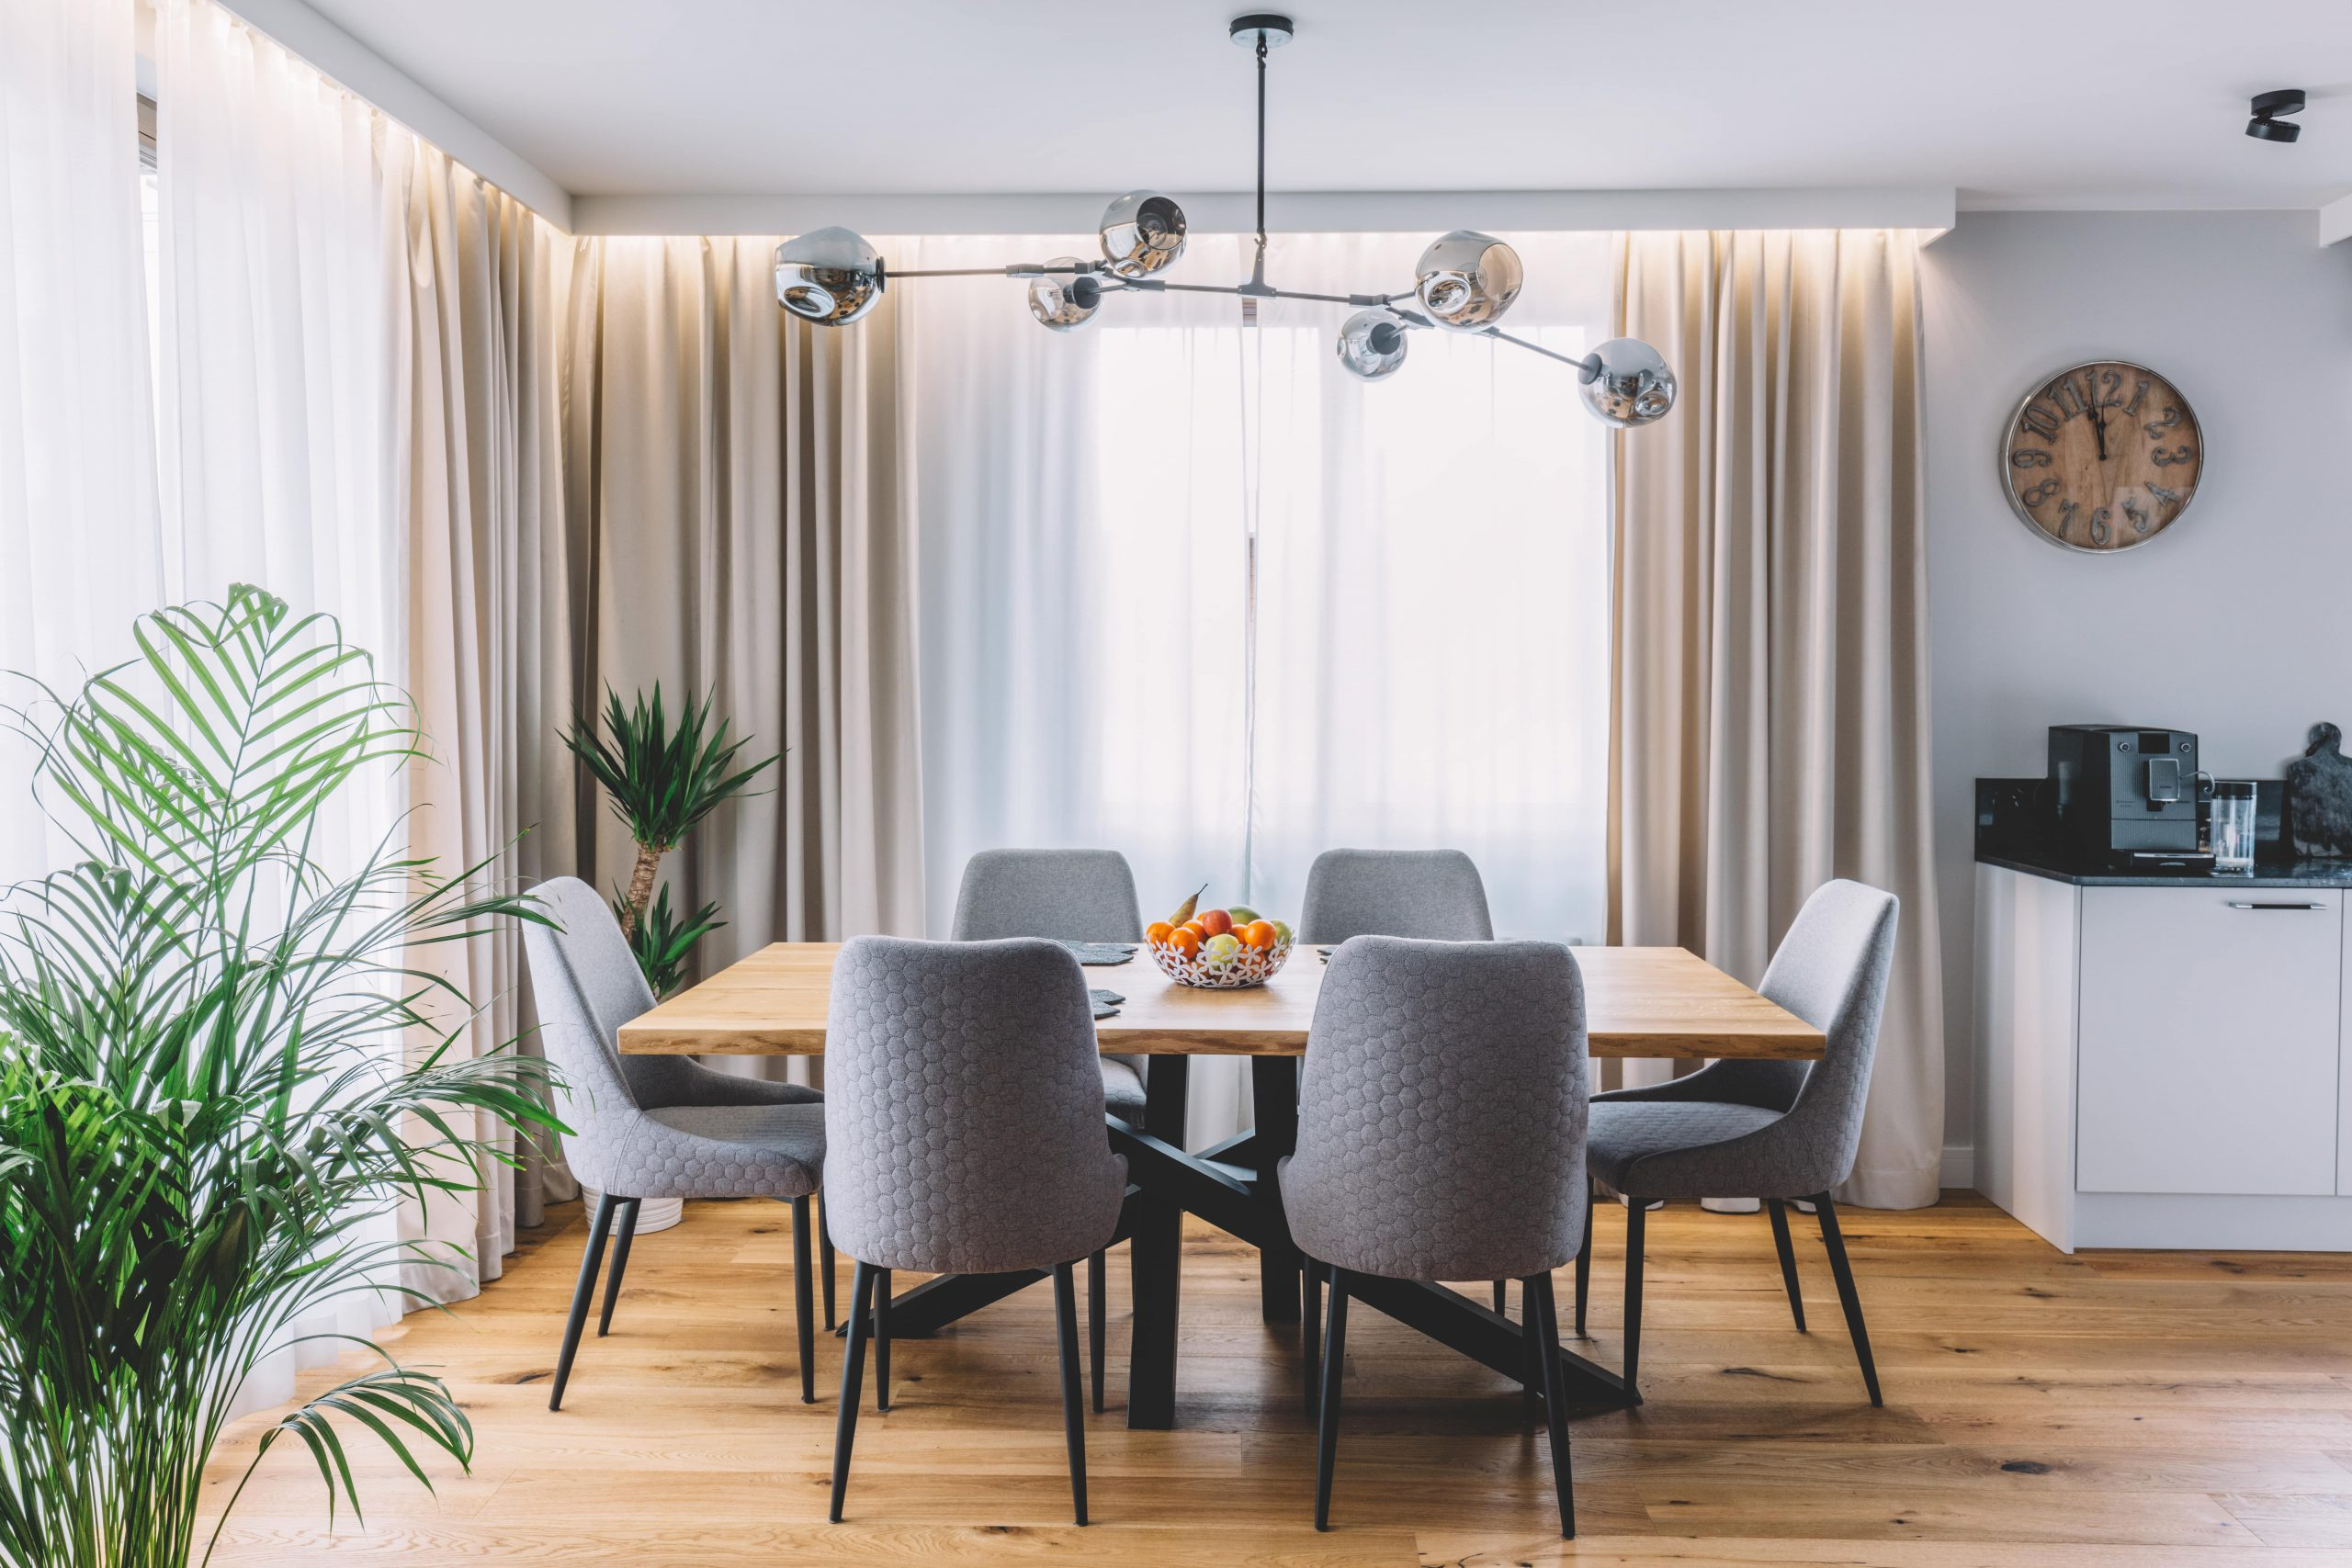 How to Choose the Dining Room Chairs for your Home?